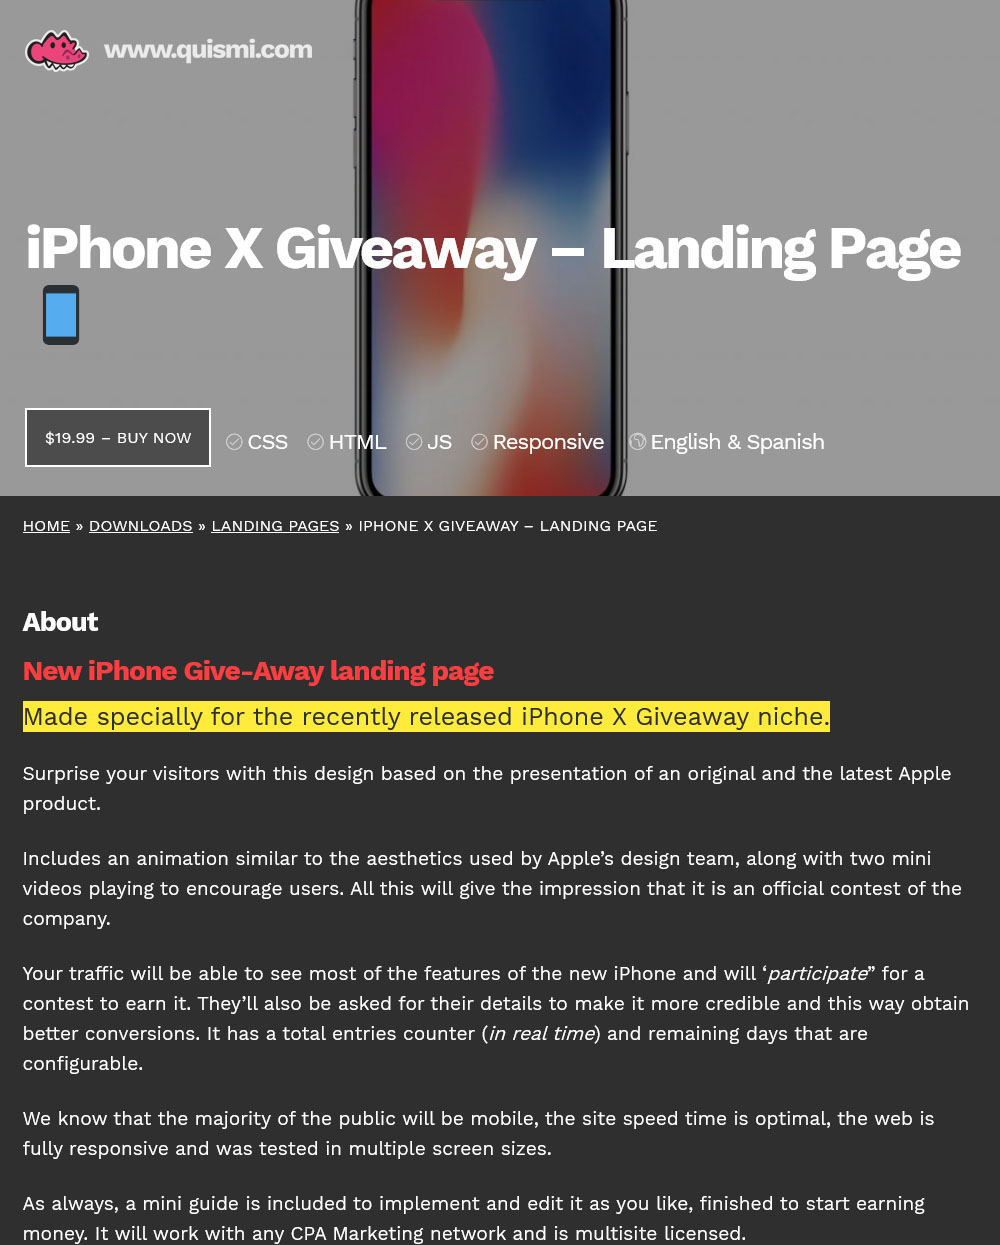 iPhone X Giveaway Landing Page | Top Affiliate Marketing Forum